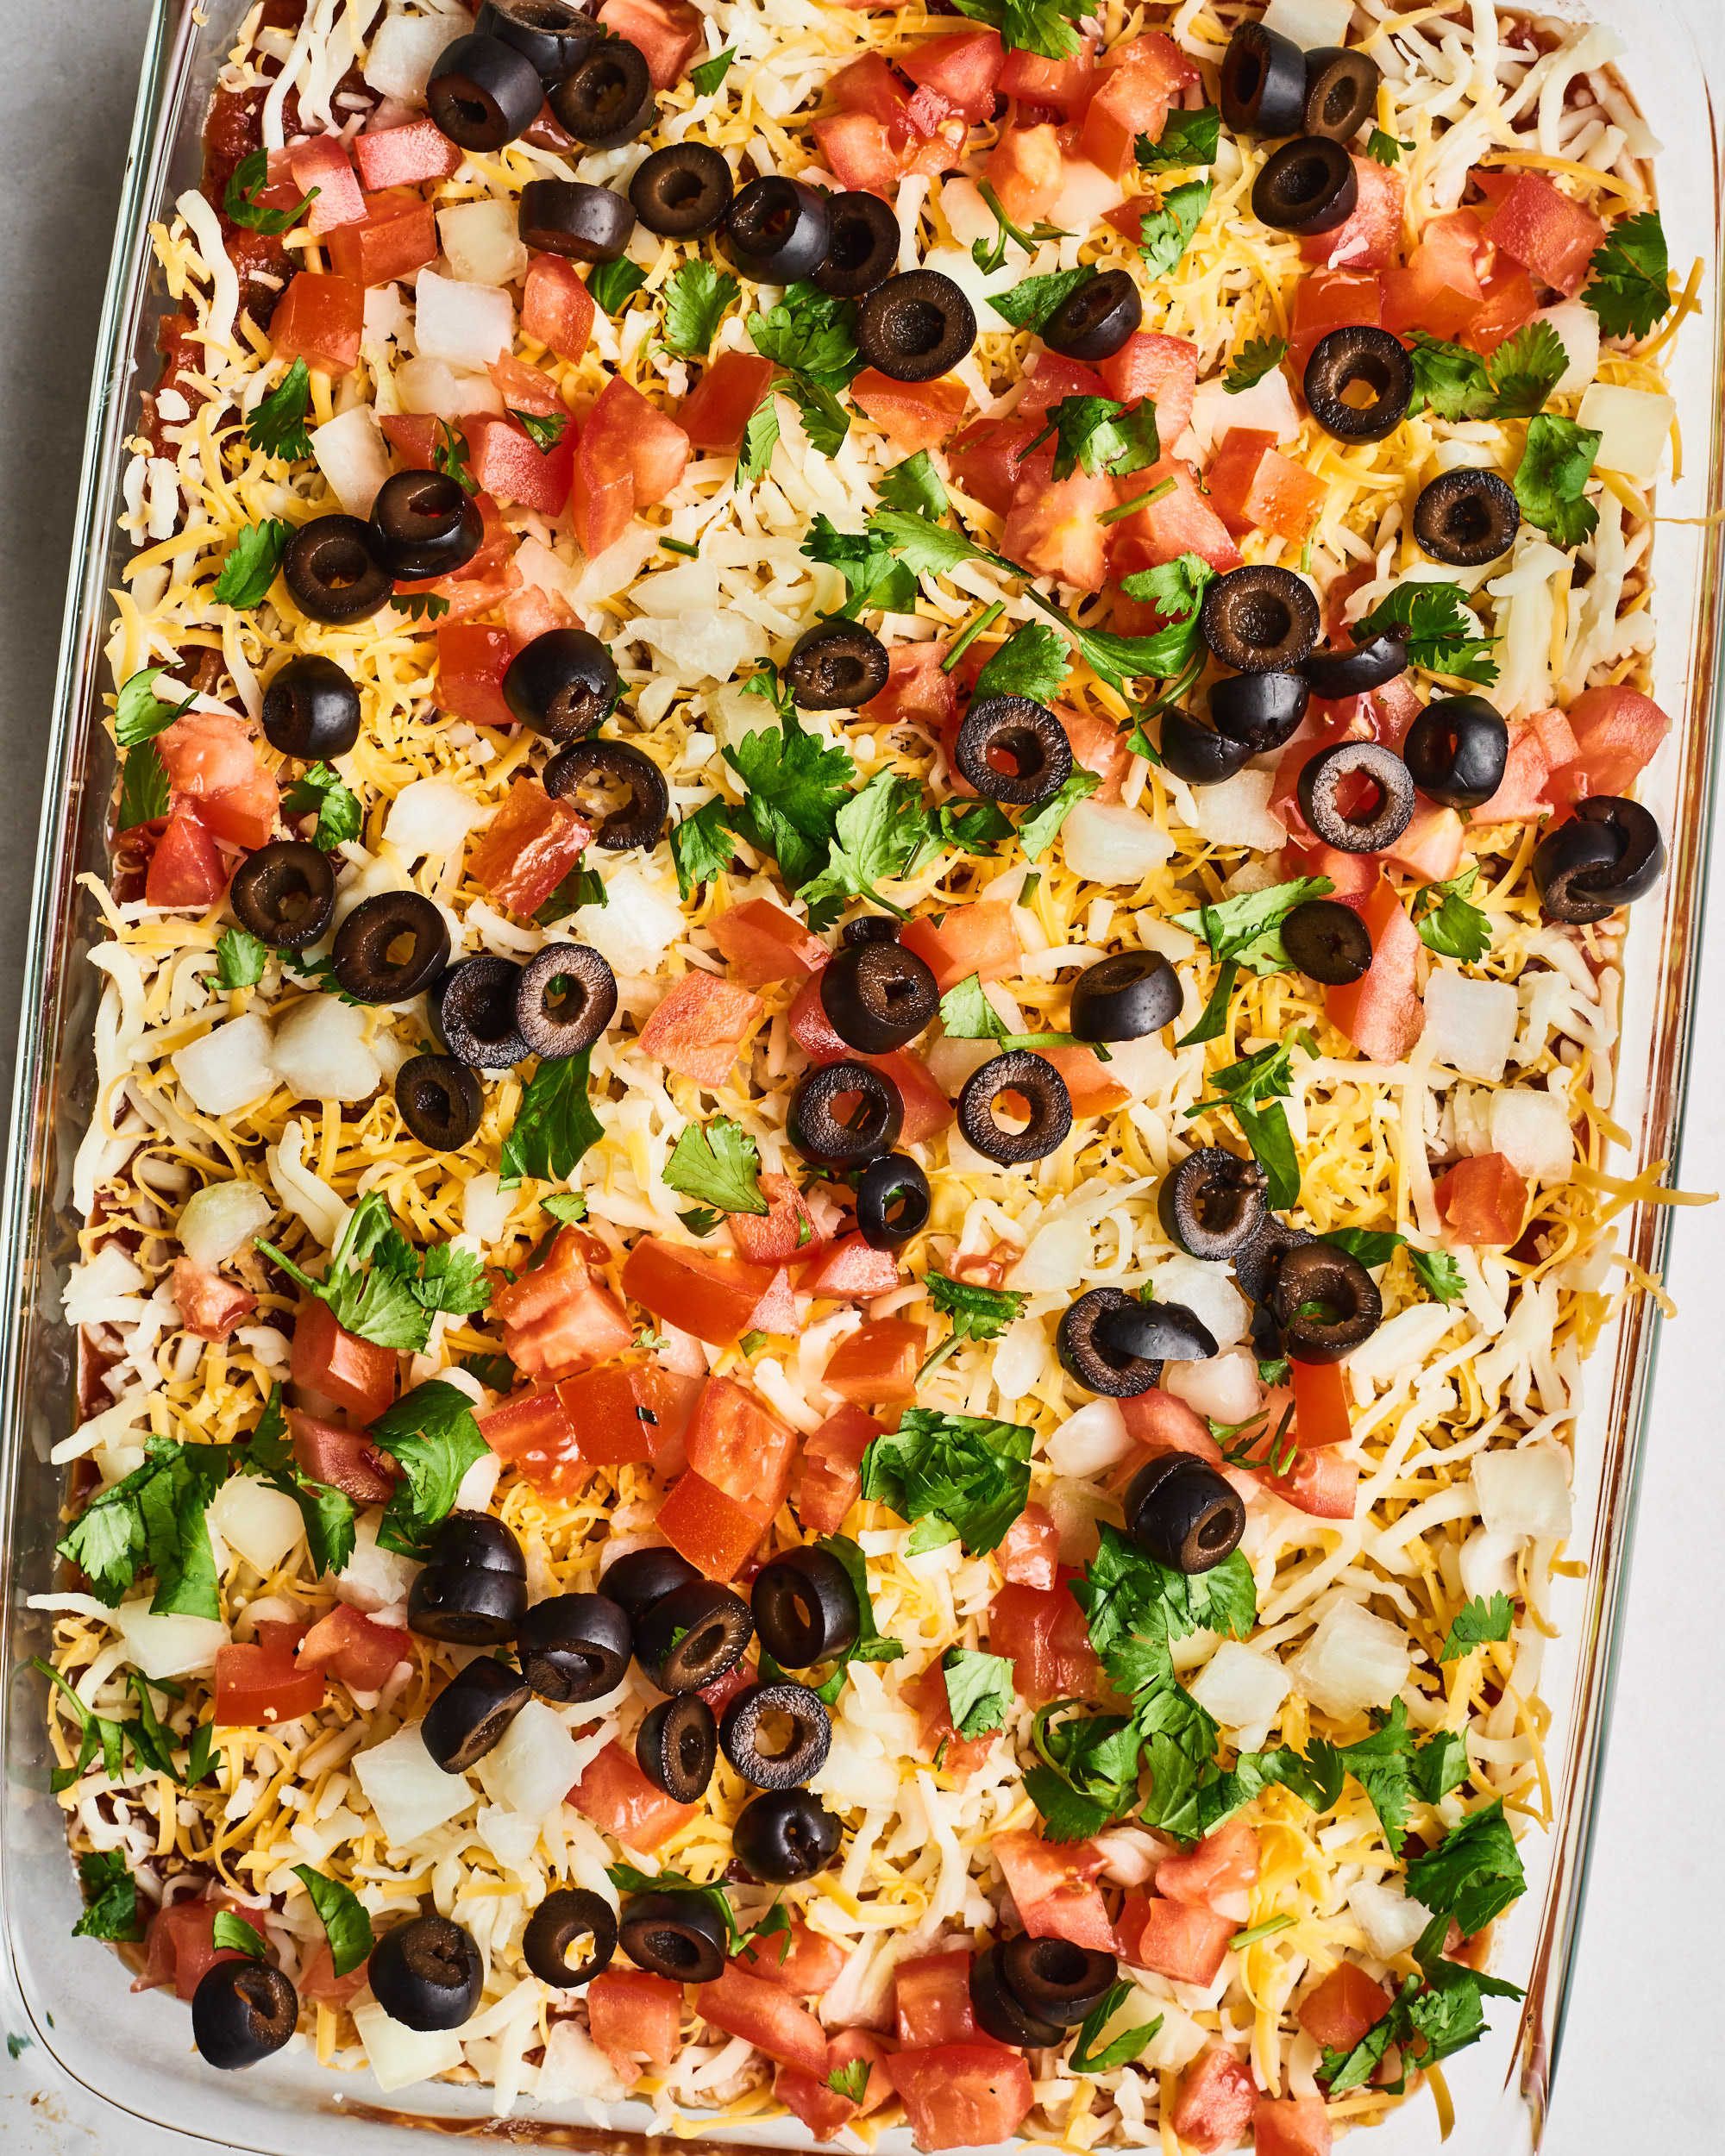 25 + Graduation Party Recipes That'll Feed A Crowd